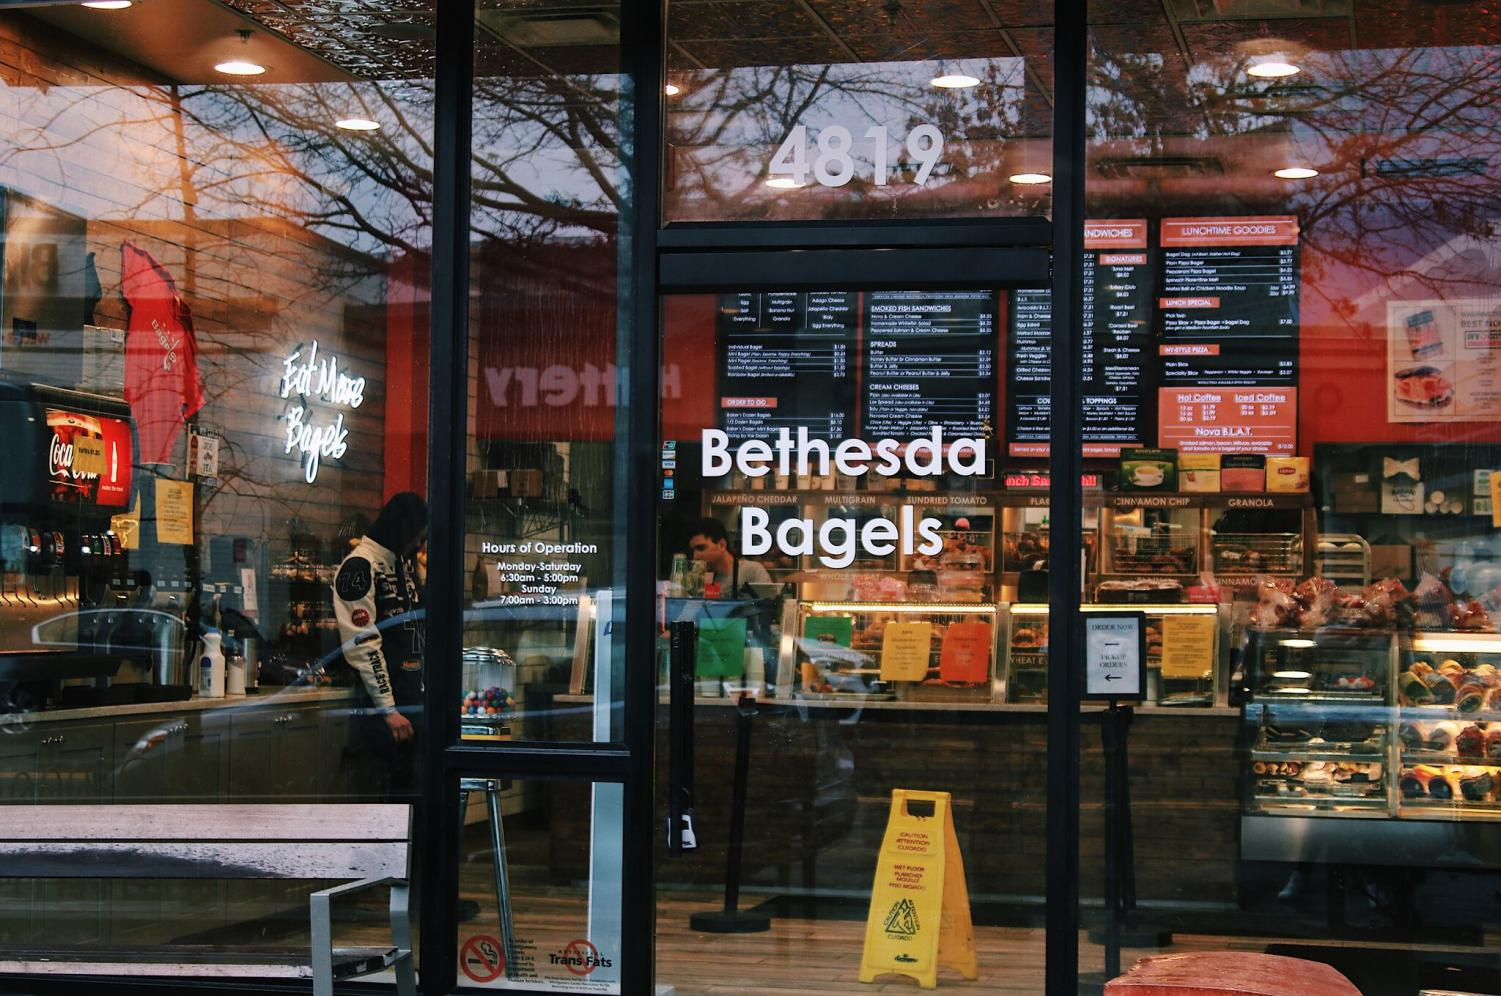 Bethesda Bagels is opening a new location at Wildwood Shopping Center. The local bagel chain is a family run business with an endearing past.